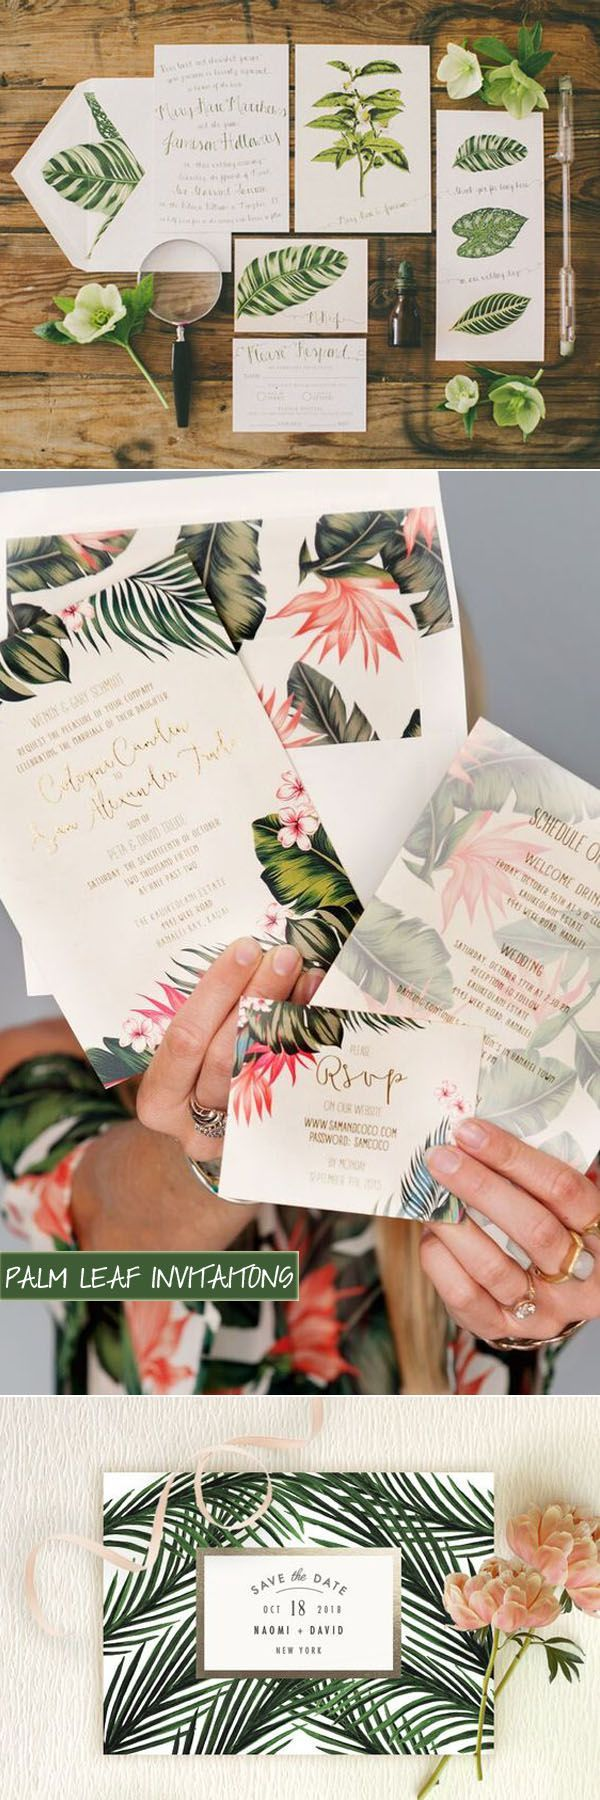 addressing wedding invitations married woman doctor%0A Top    Wedding Invitation Trends For